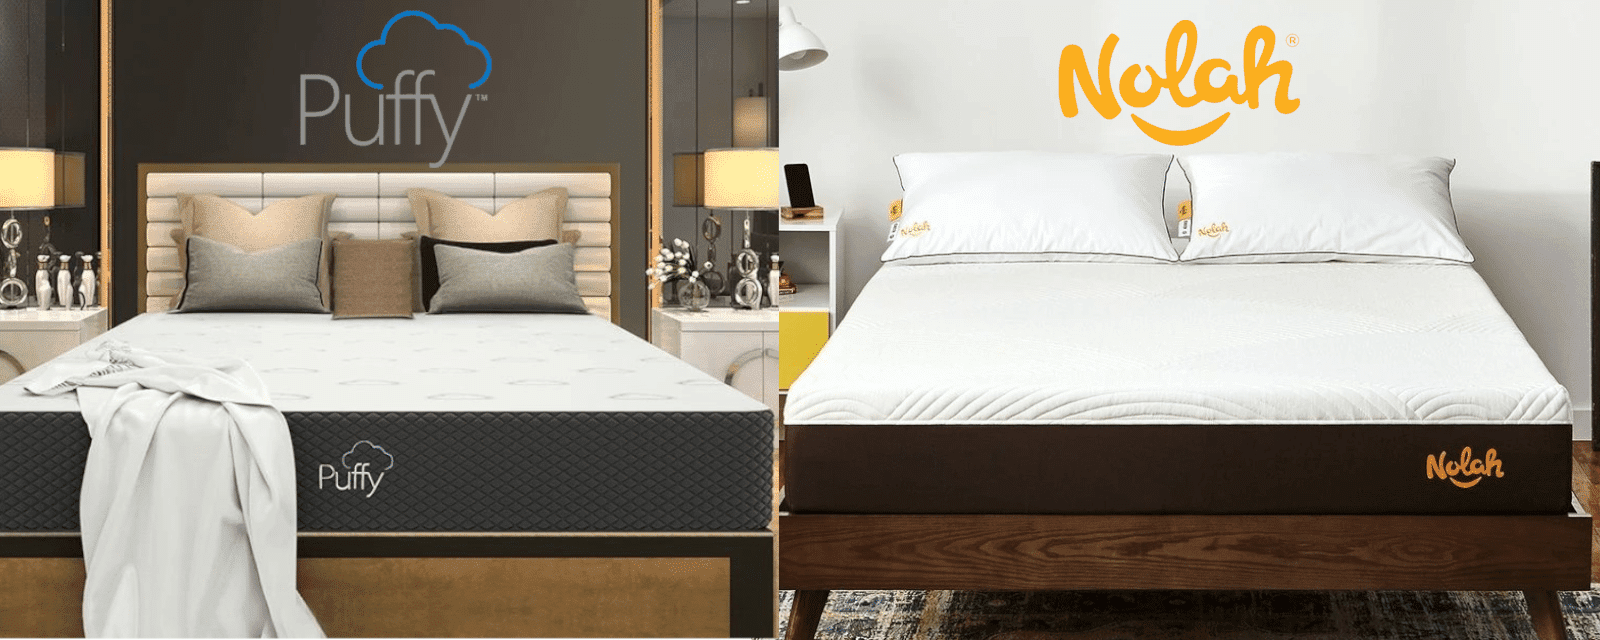 Nolah mattress vs Puffy